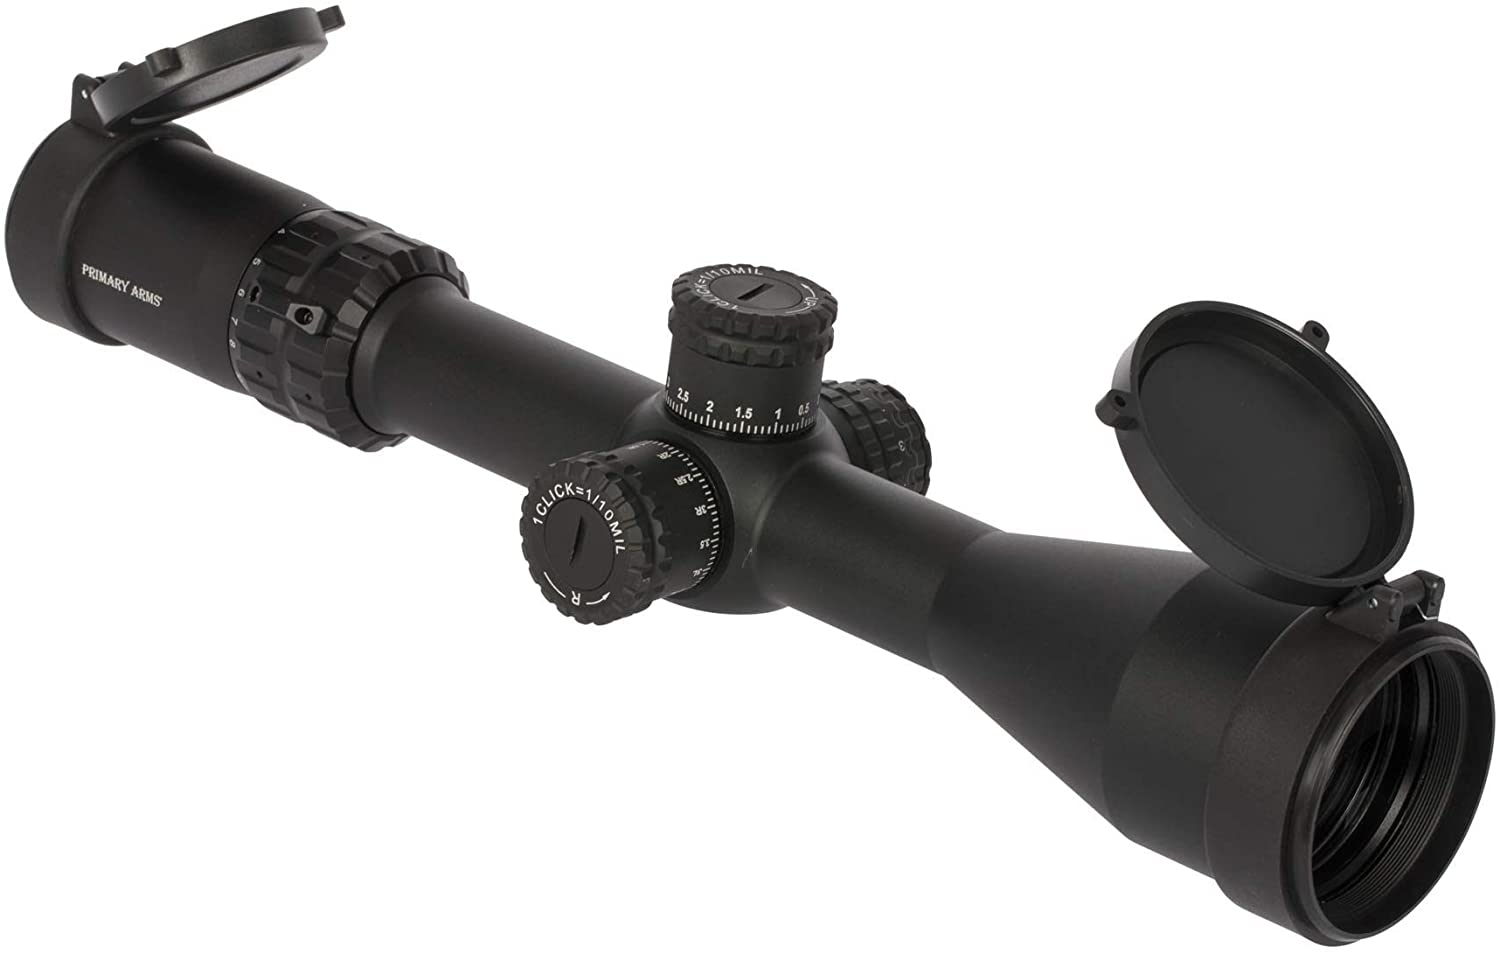 Primary Arms SLX 3-18x50mm FFP Rifle Scope – Illuminated ACSS-HUD-DMR-308